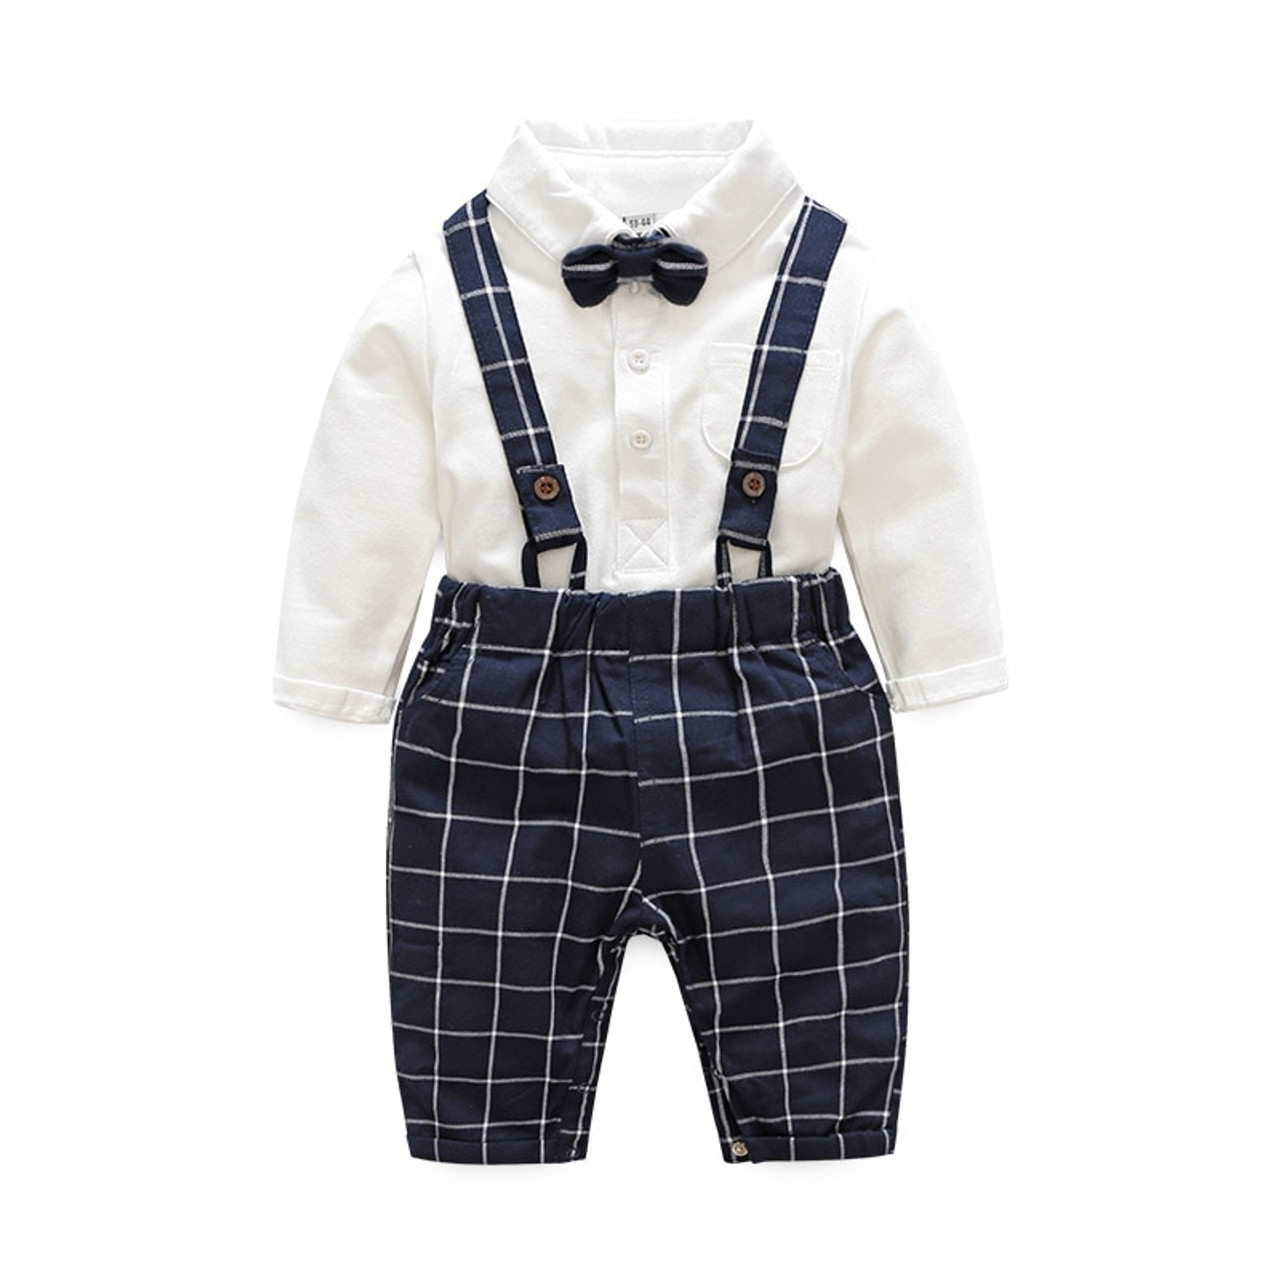 1e1d15b0023d baby boy clothes baby clothing suit gentleman Style bow tie + plaid shirt + Bib  baby ...